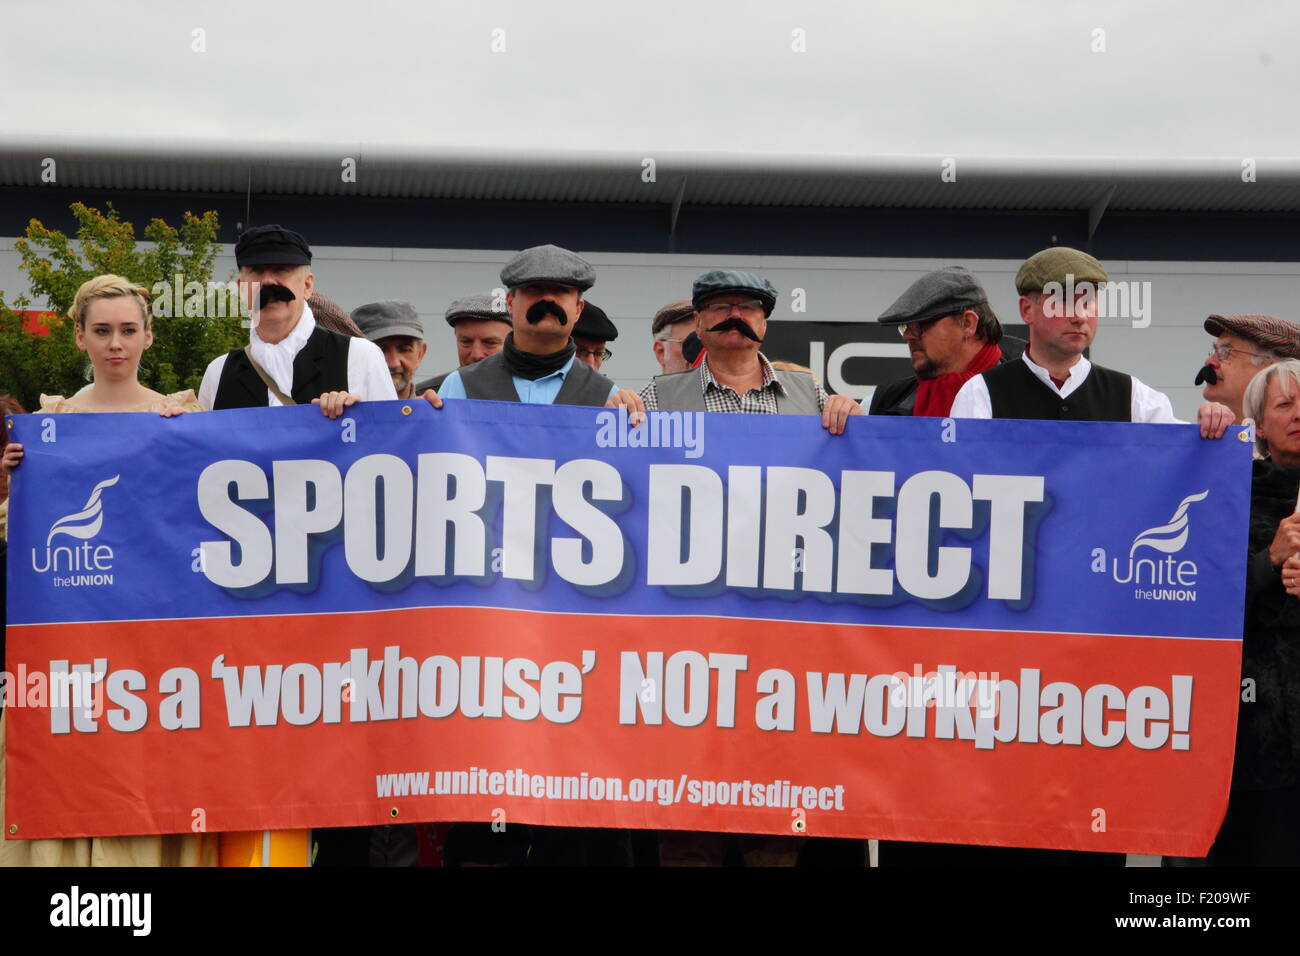 Shirebrook, Derbyshire, UK. 9 Sept 2015. Unite union supporters dressed as Dickensian-style workers protest against - Stock Image